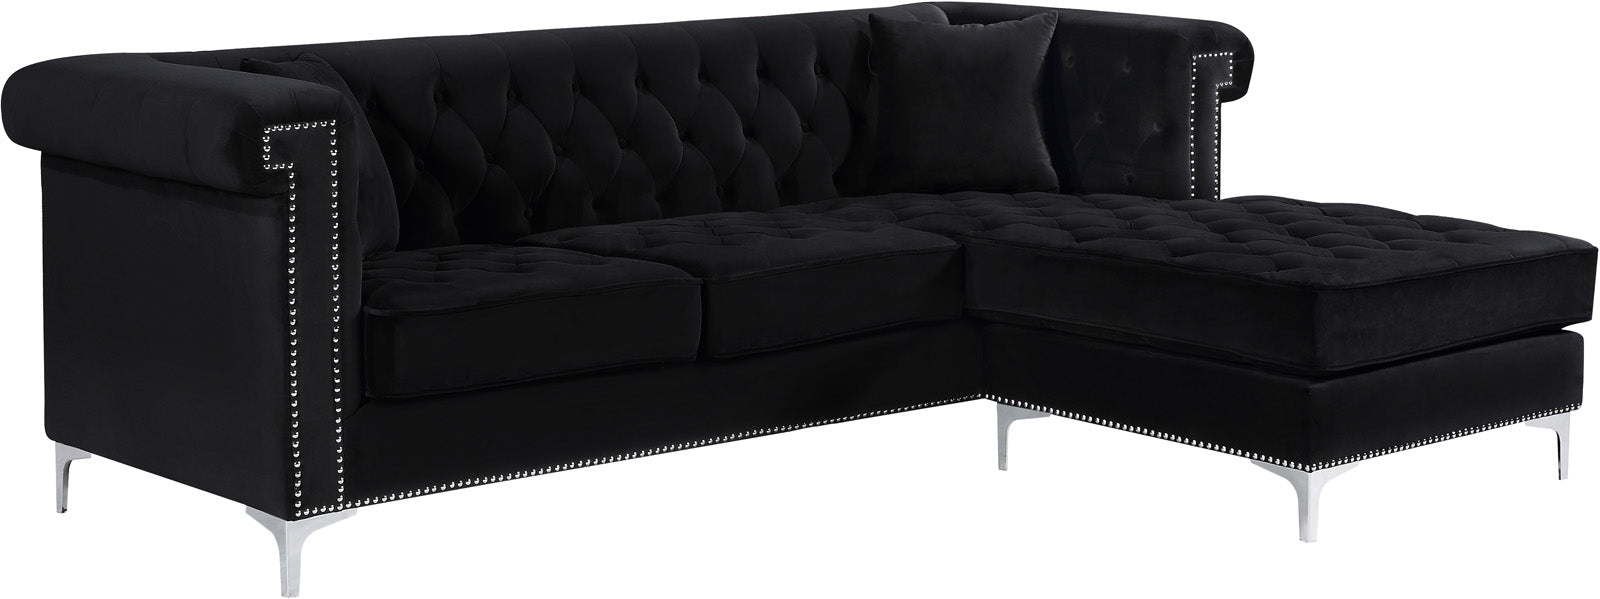 Damian Black Velvet 2pc. Reversible Sectional